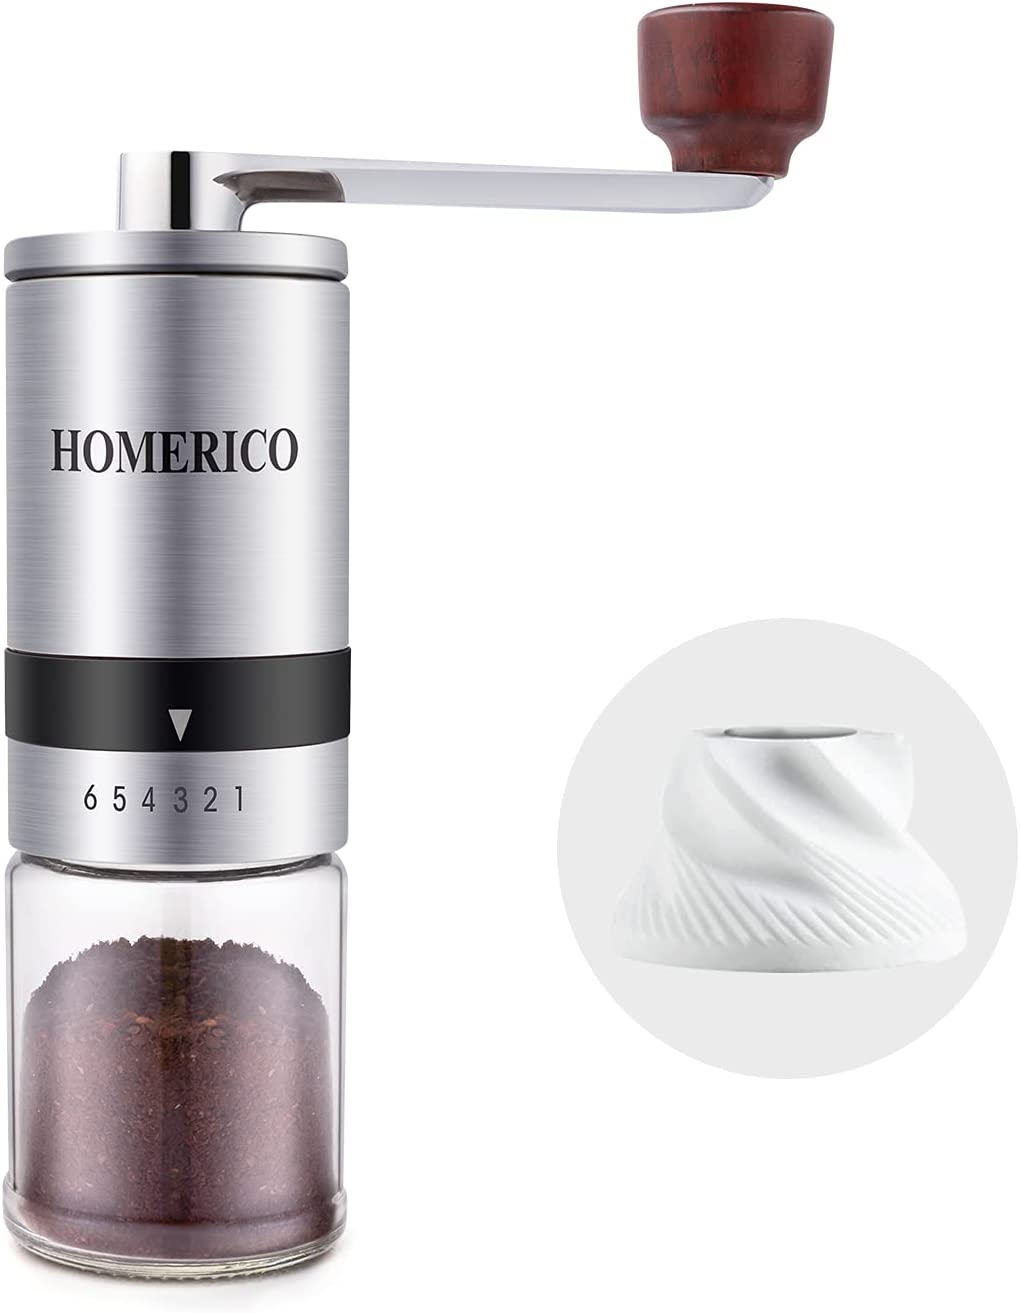 Homerico Manual Coffee Grinder with External Adjustments, Ceramic Conical Burr Mill & Stainless Steel Waterproof Body, Small Portable Hand Coffee Bean Grinders for French Press, Espresso, Turkish Brew